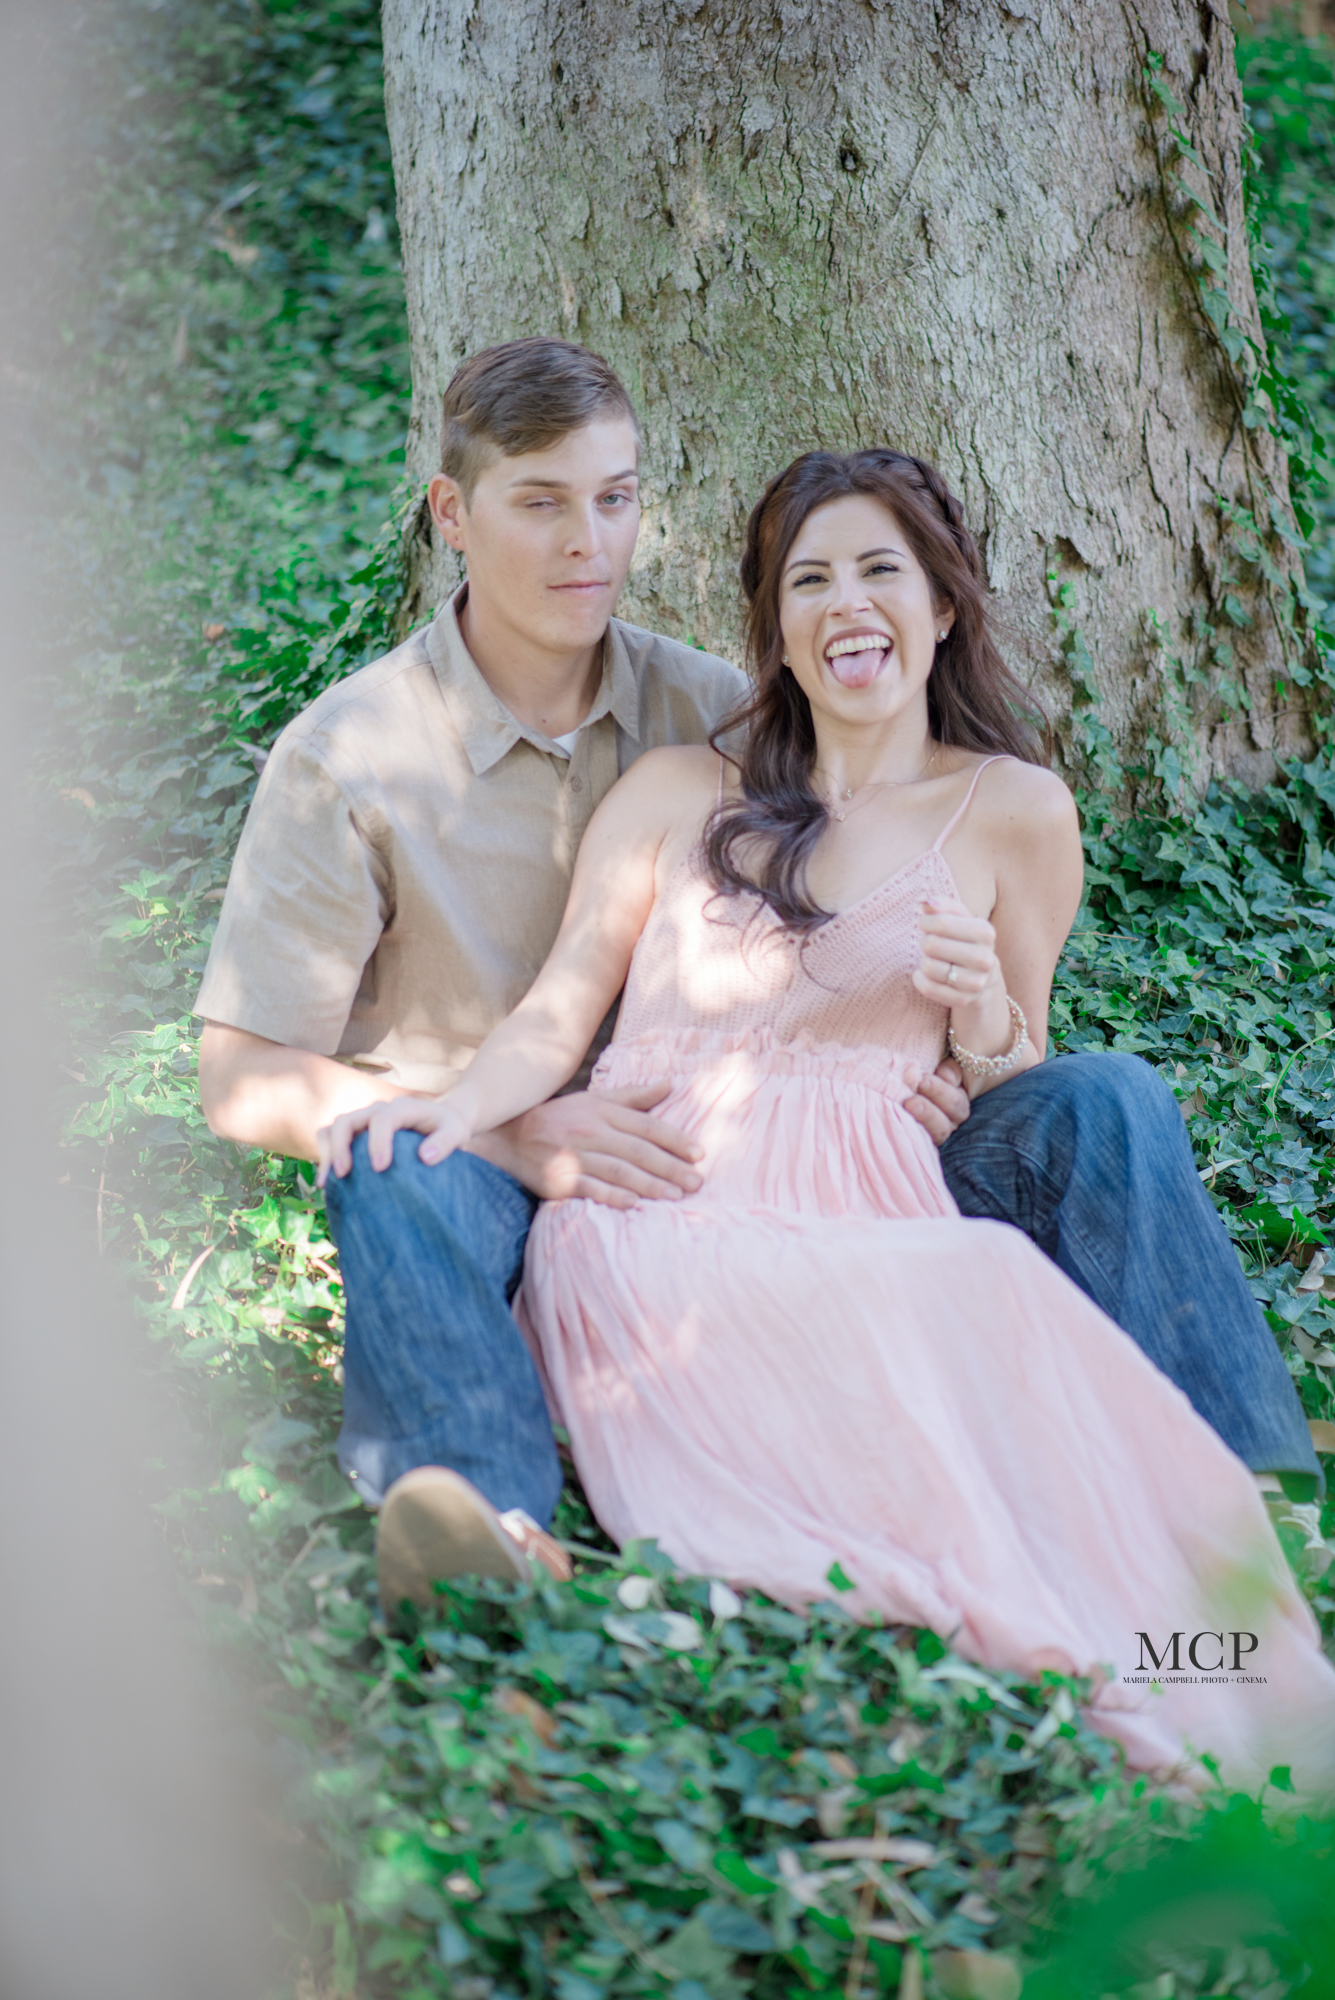 A&C Engagement-MCP-7.jpg